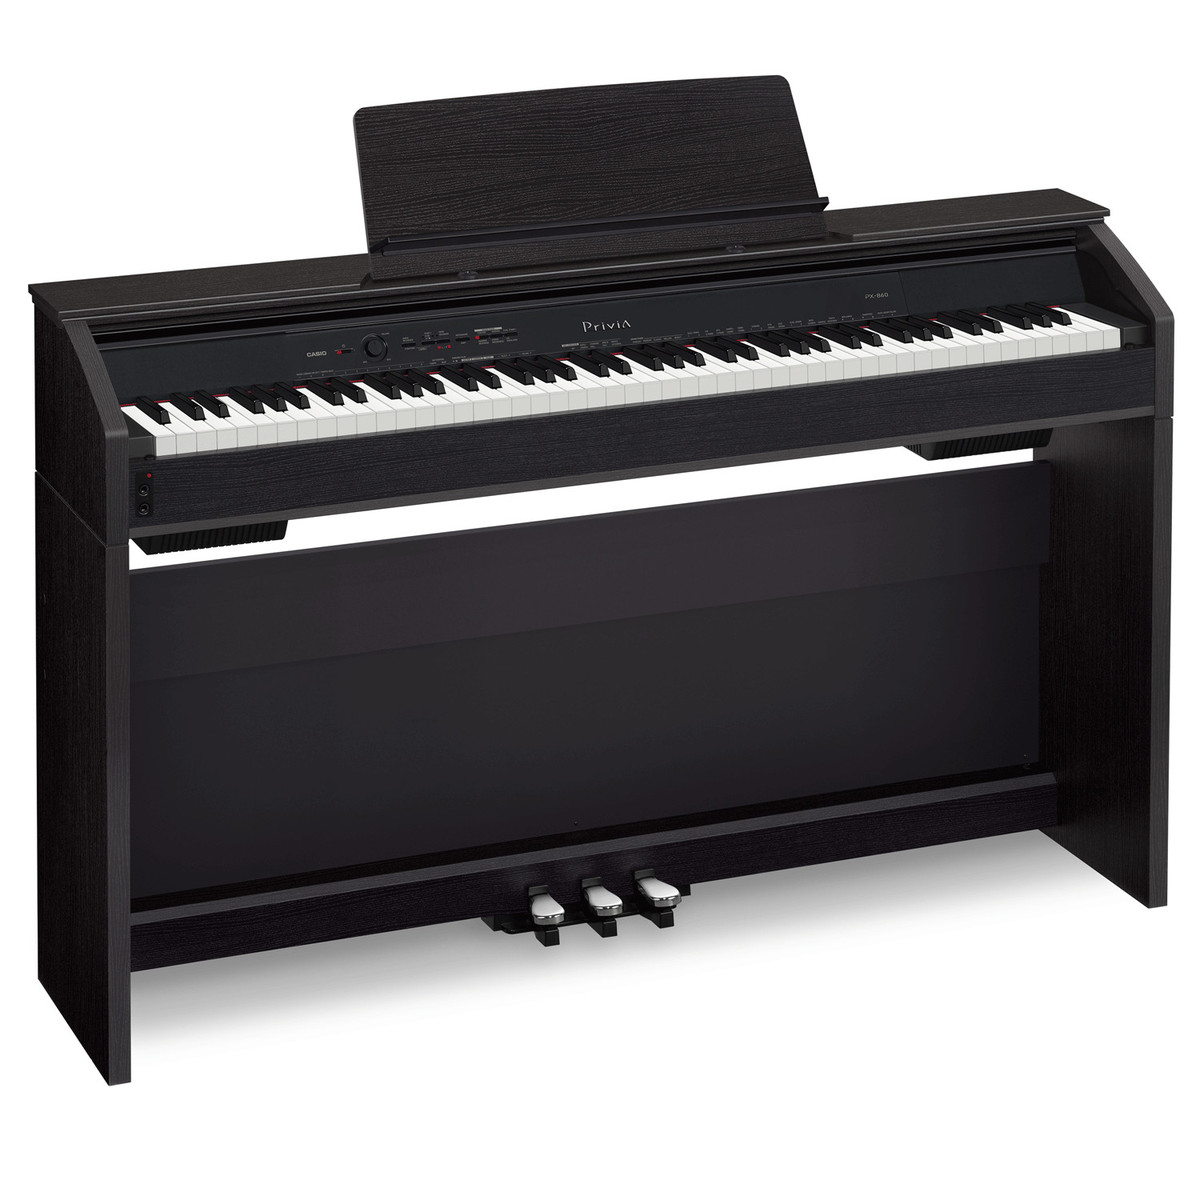 disc casio privia px 860 digital piano at gear4music. Black Bedroom Furniture Sets. Home Design Ideas